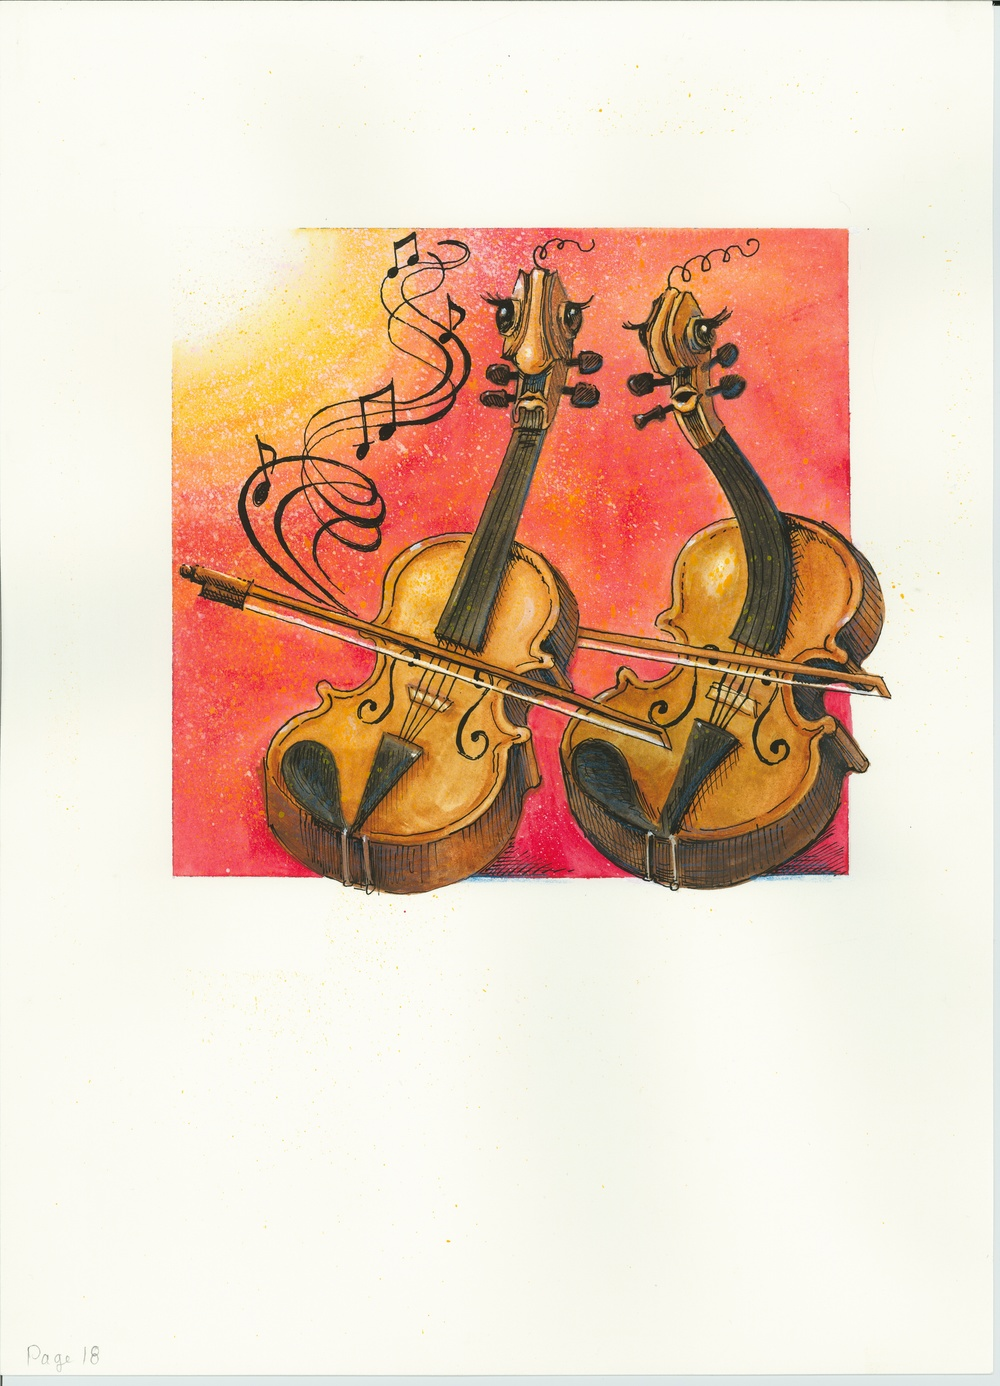 Artwork, 'Two Strings', Christine Tell 20150602.JPG